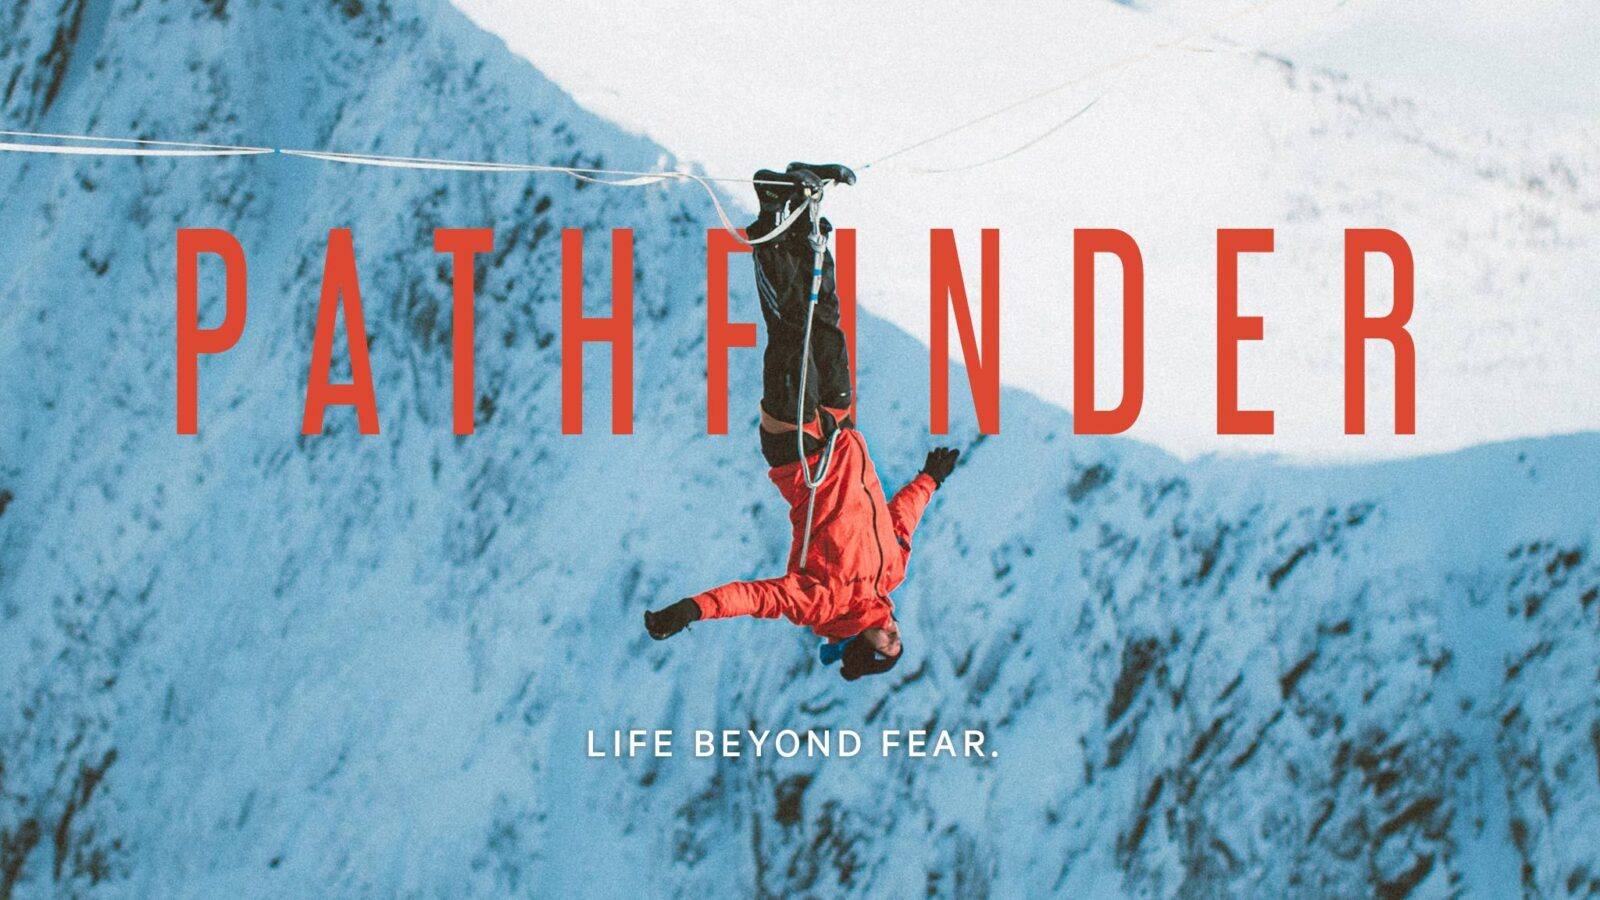 Remarkable New Adventure Film Beautifully Captures Resiliency of Human Spirit